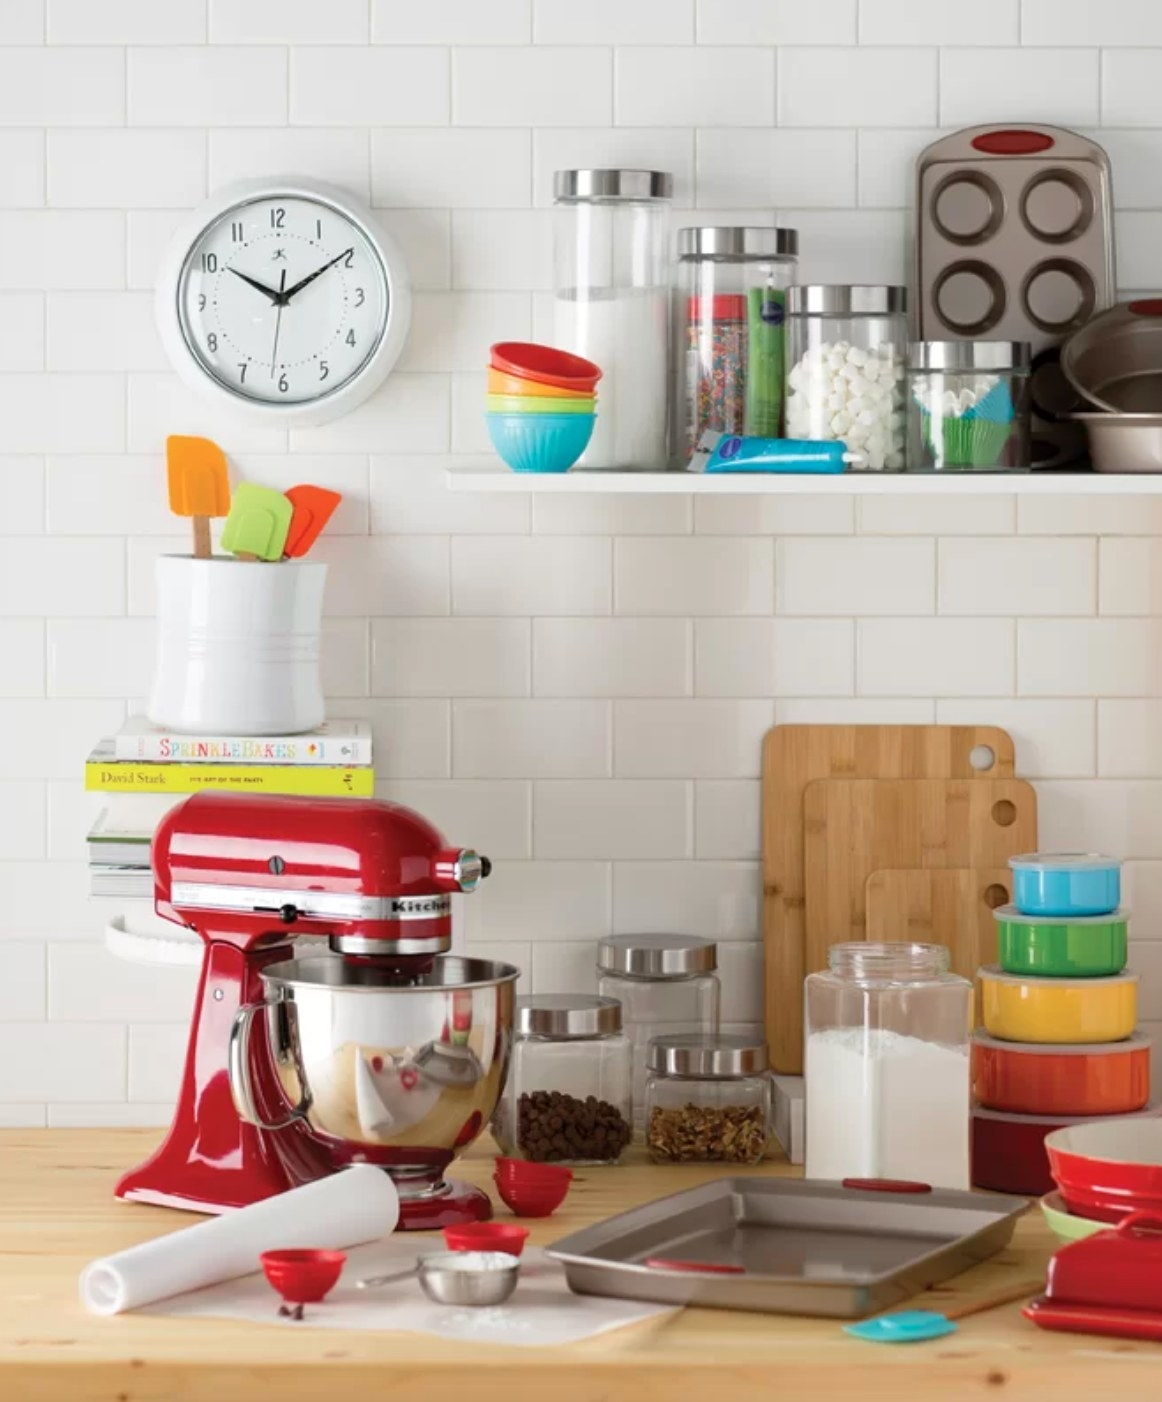 The four-piece bakeware set with metal and red accents